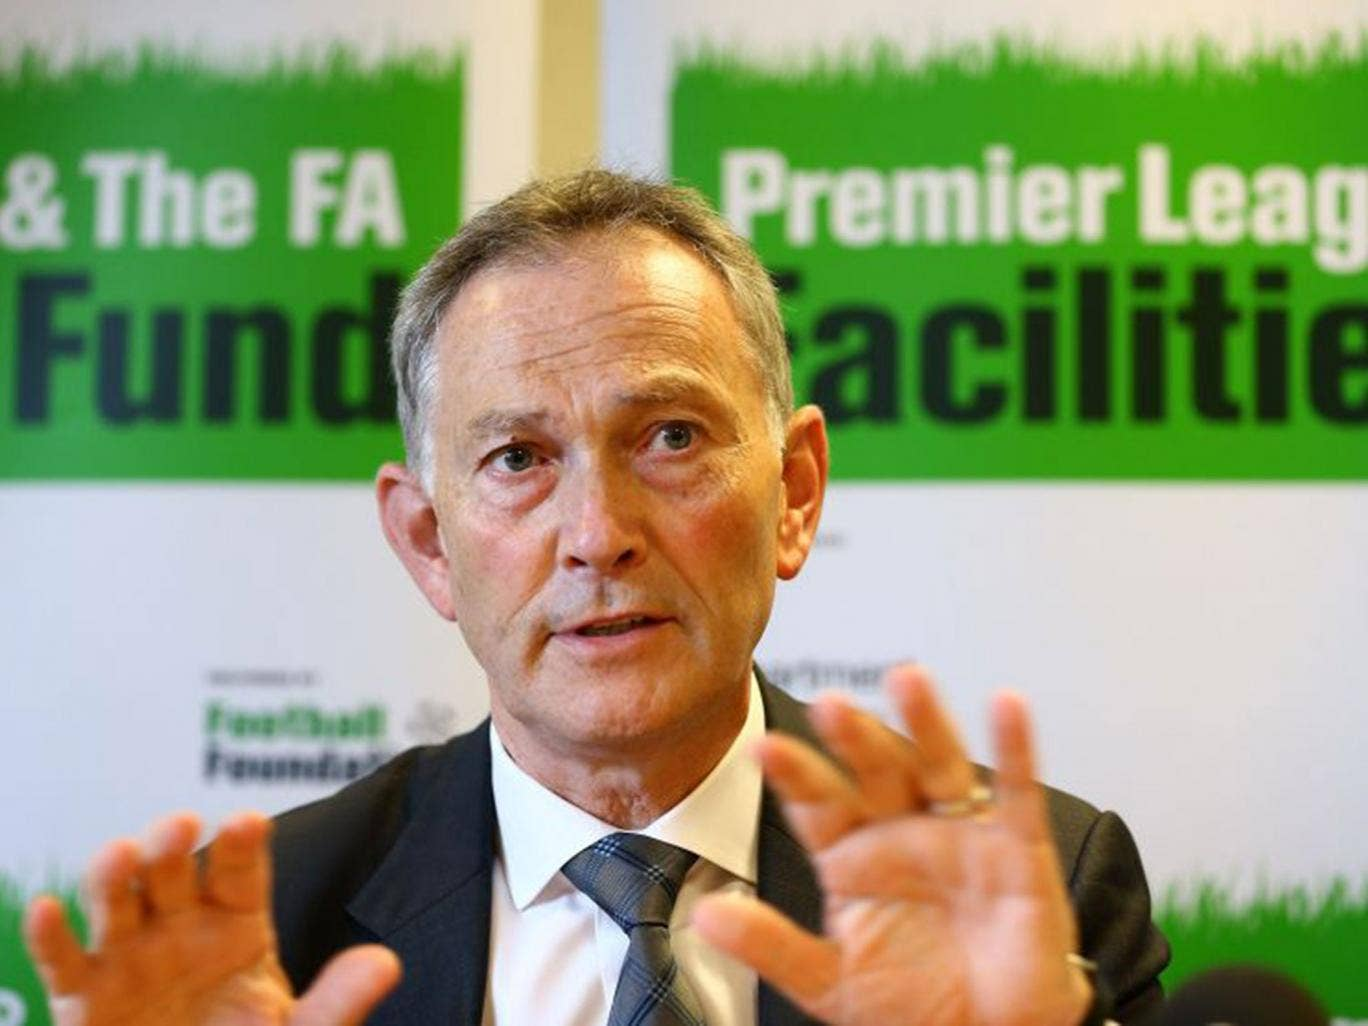 Richard Scudamore handled the publication of his emails badly and should have issued an immediate, fulsome apology